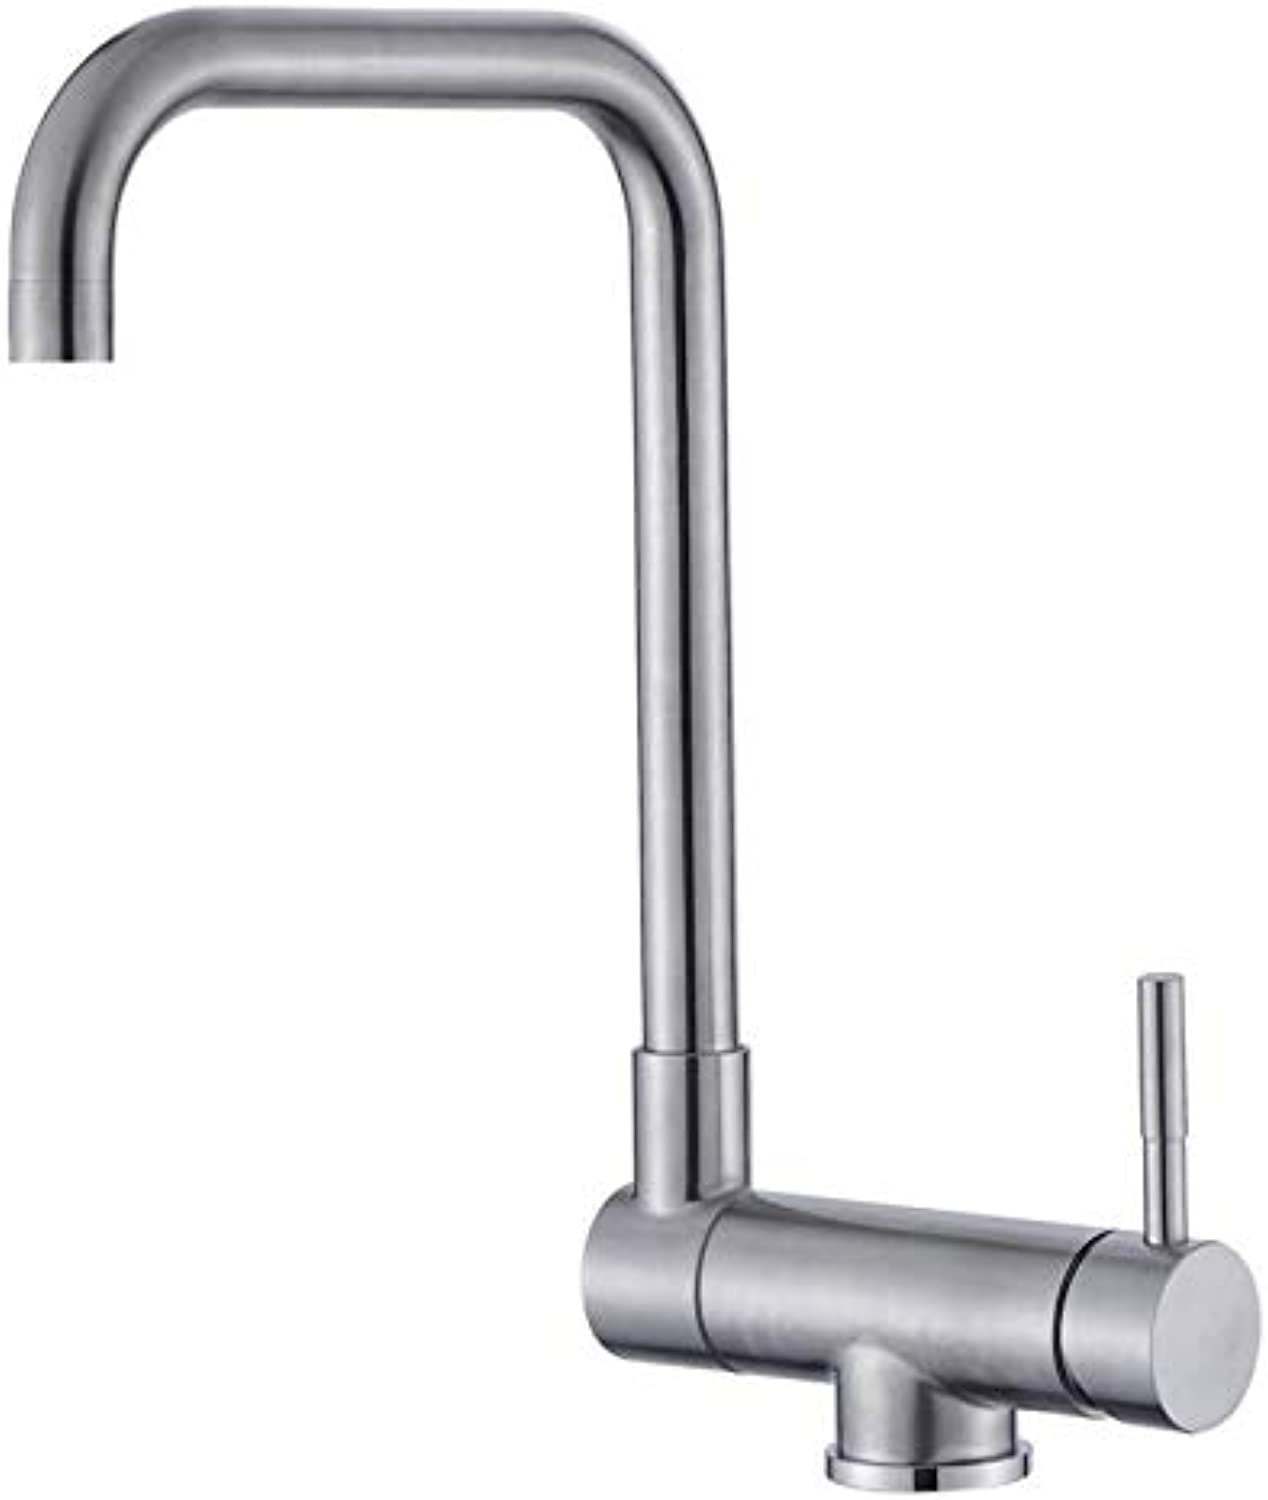 Bathroom Faucet 304 Stainless Steel Hot and Cold Kitchen redating Faucet Inside Window Low Folding Single Hole Faucet